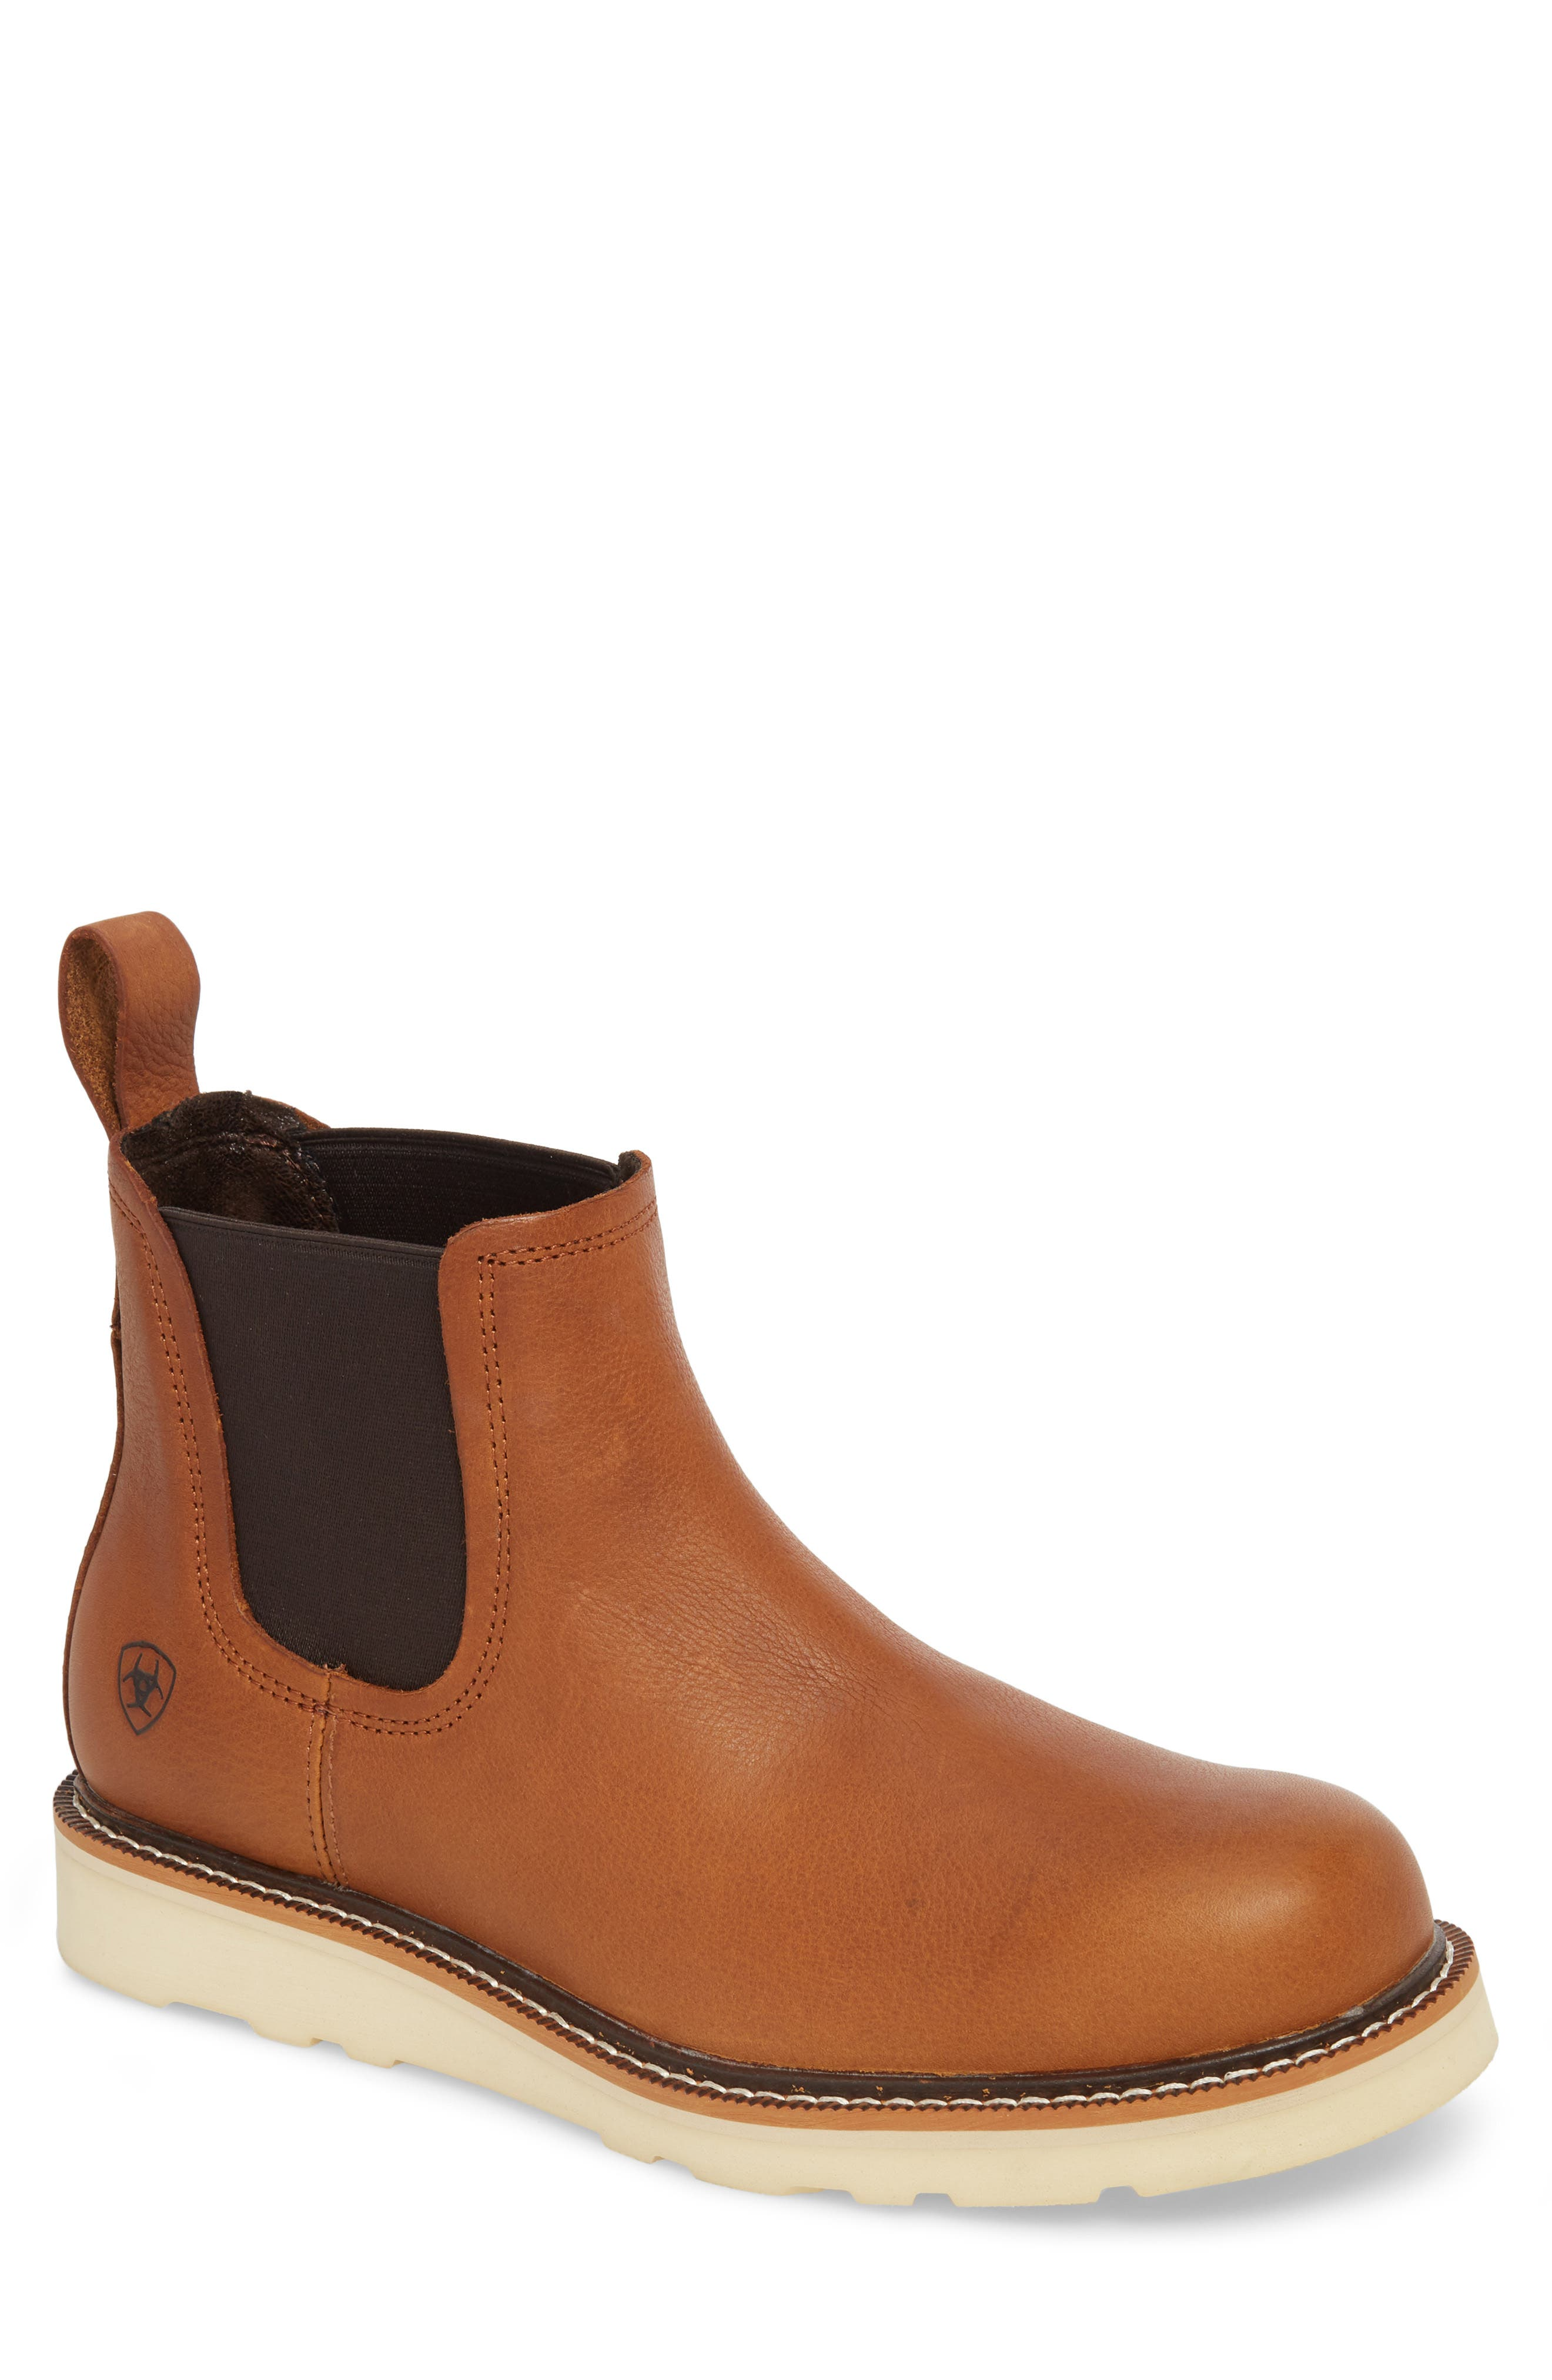 Rambler Recon Mid Chelsea Boot,                         Main,                         color, Golden Grizzly